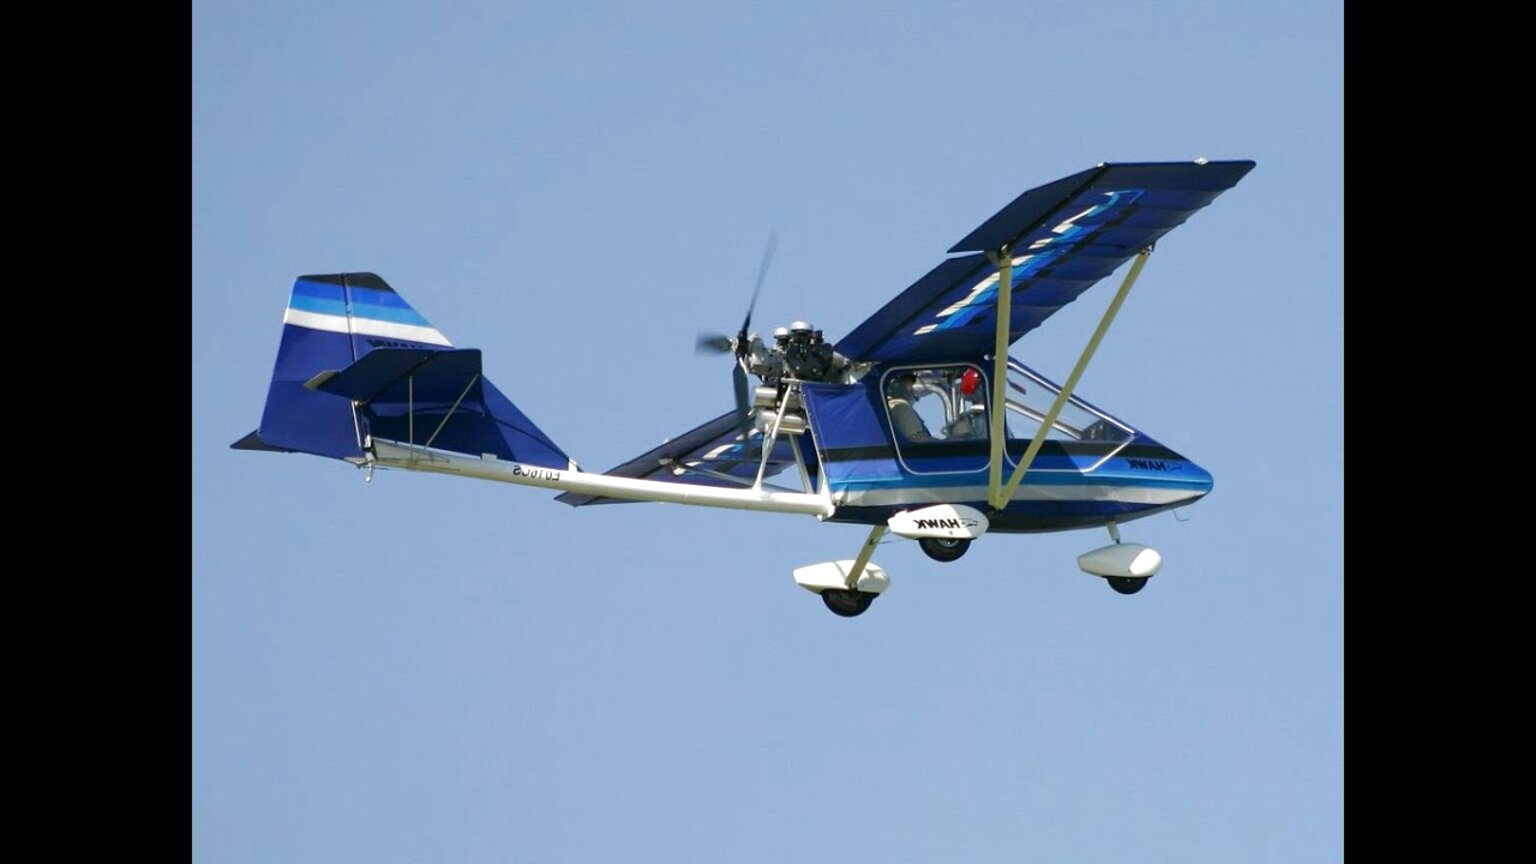 Ultralight Airplane for sale compared to CraigsList | Only ...